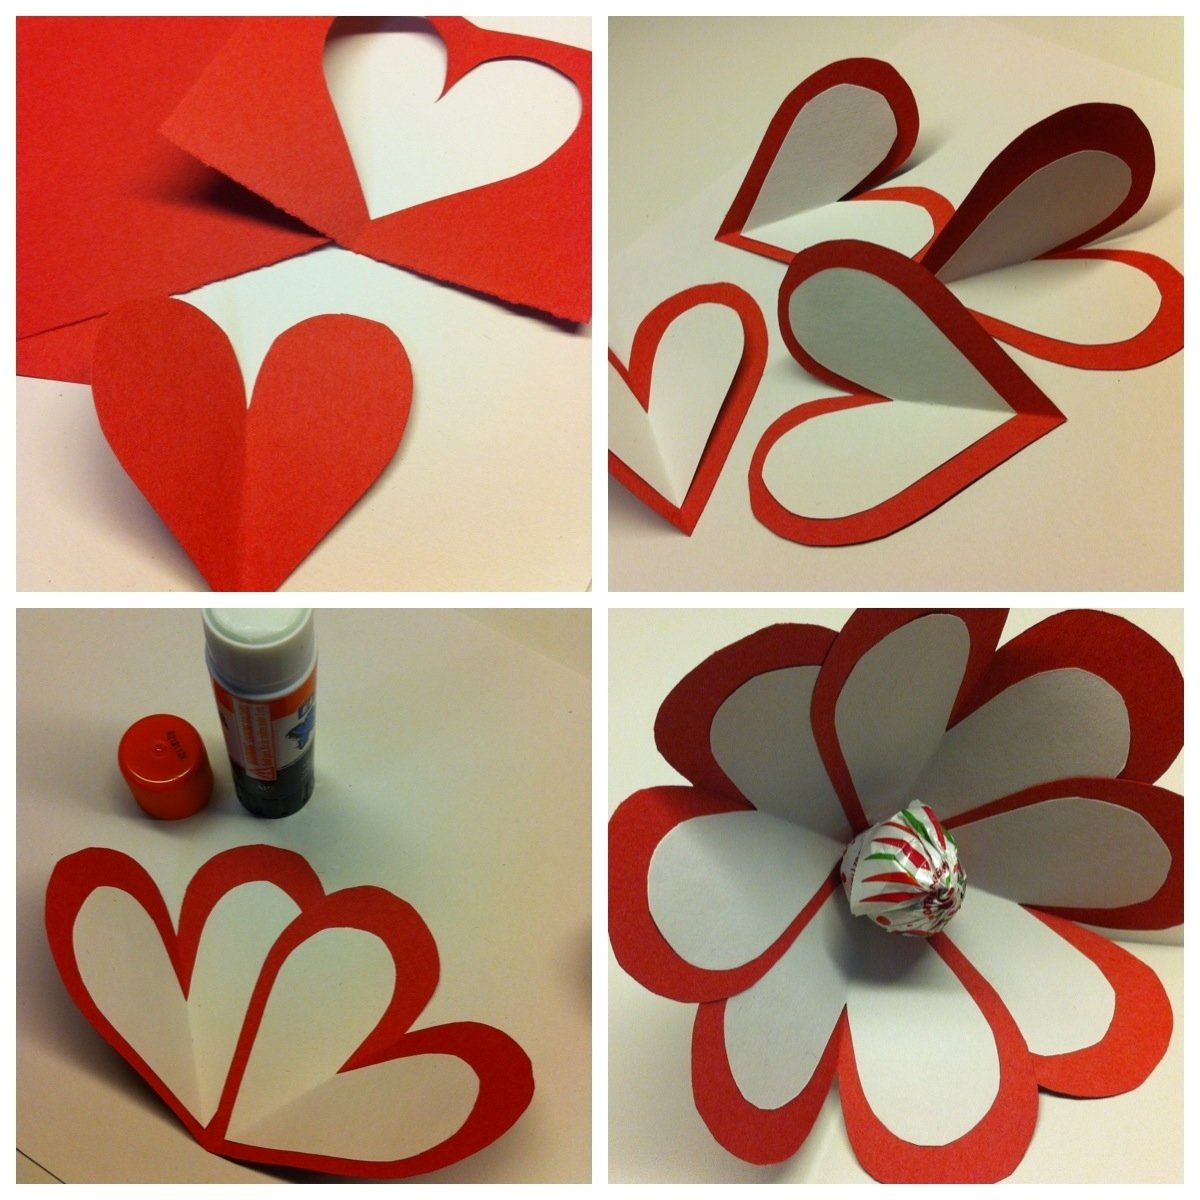 10 Most Recommended Valentines Craft Ideas For Adults craft ideas valentines day homeminecraft 1 2021